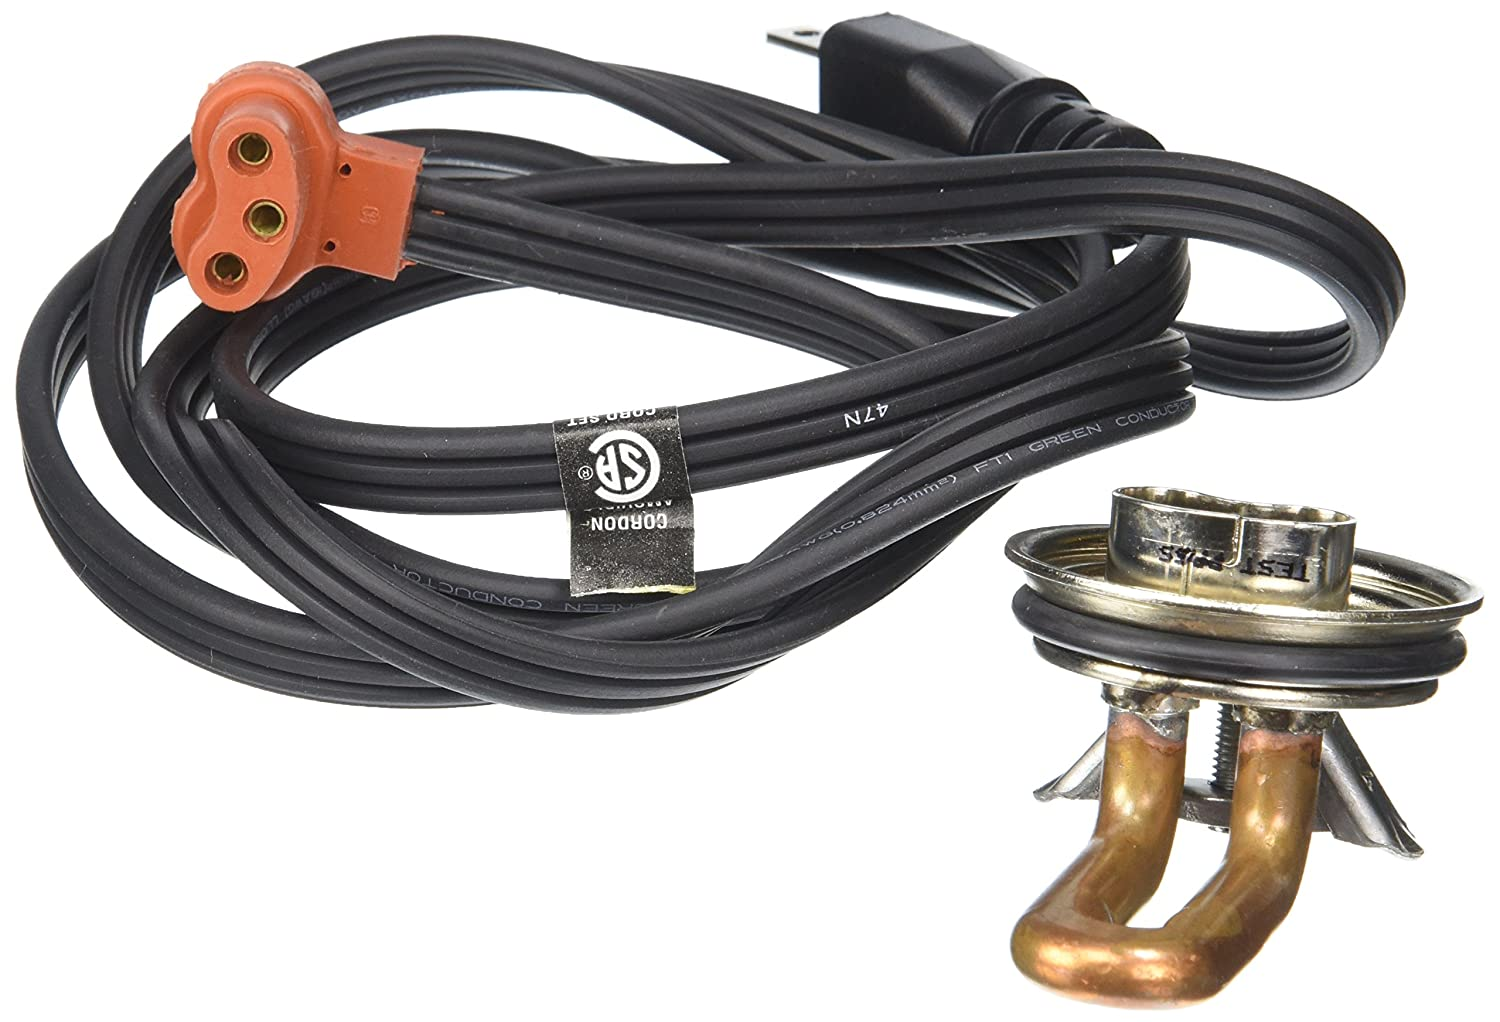 Zerostart 310-0065 Engine Block Heater ZeroStart Starting Products (Phillip